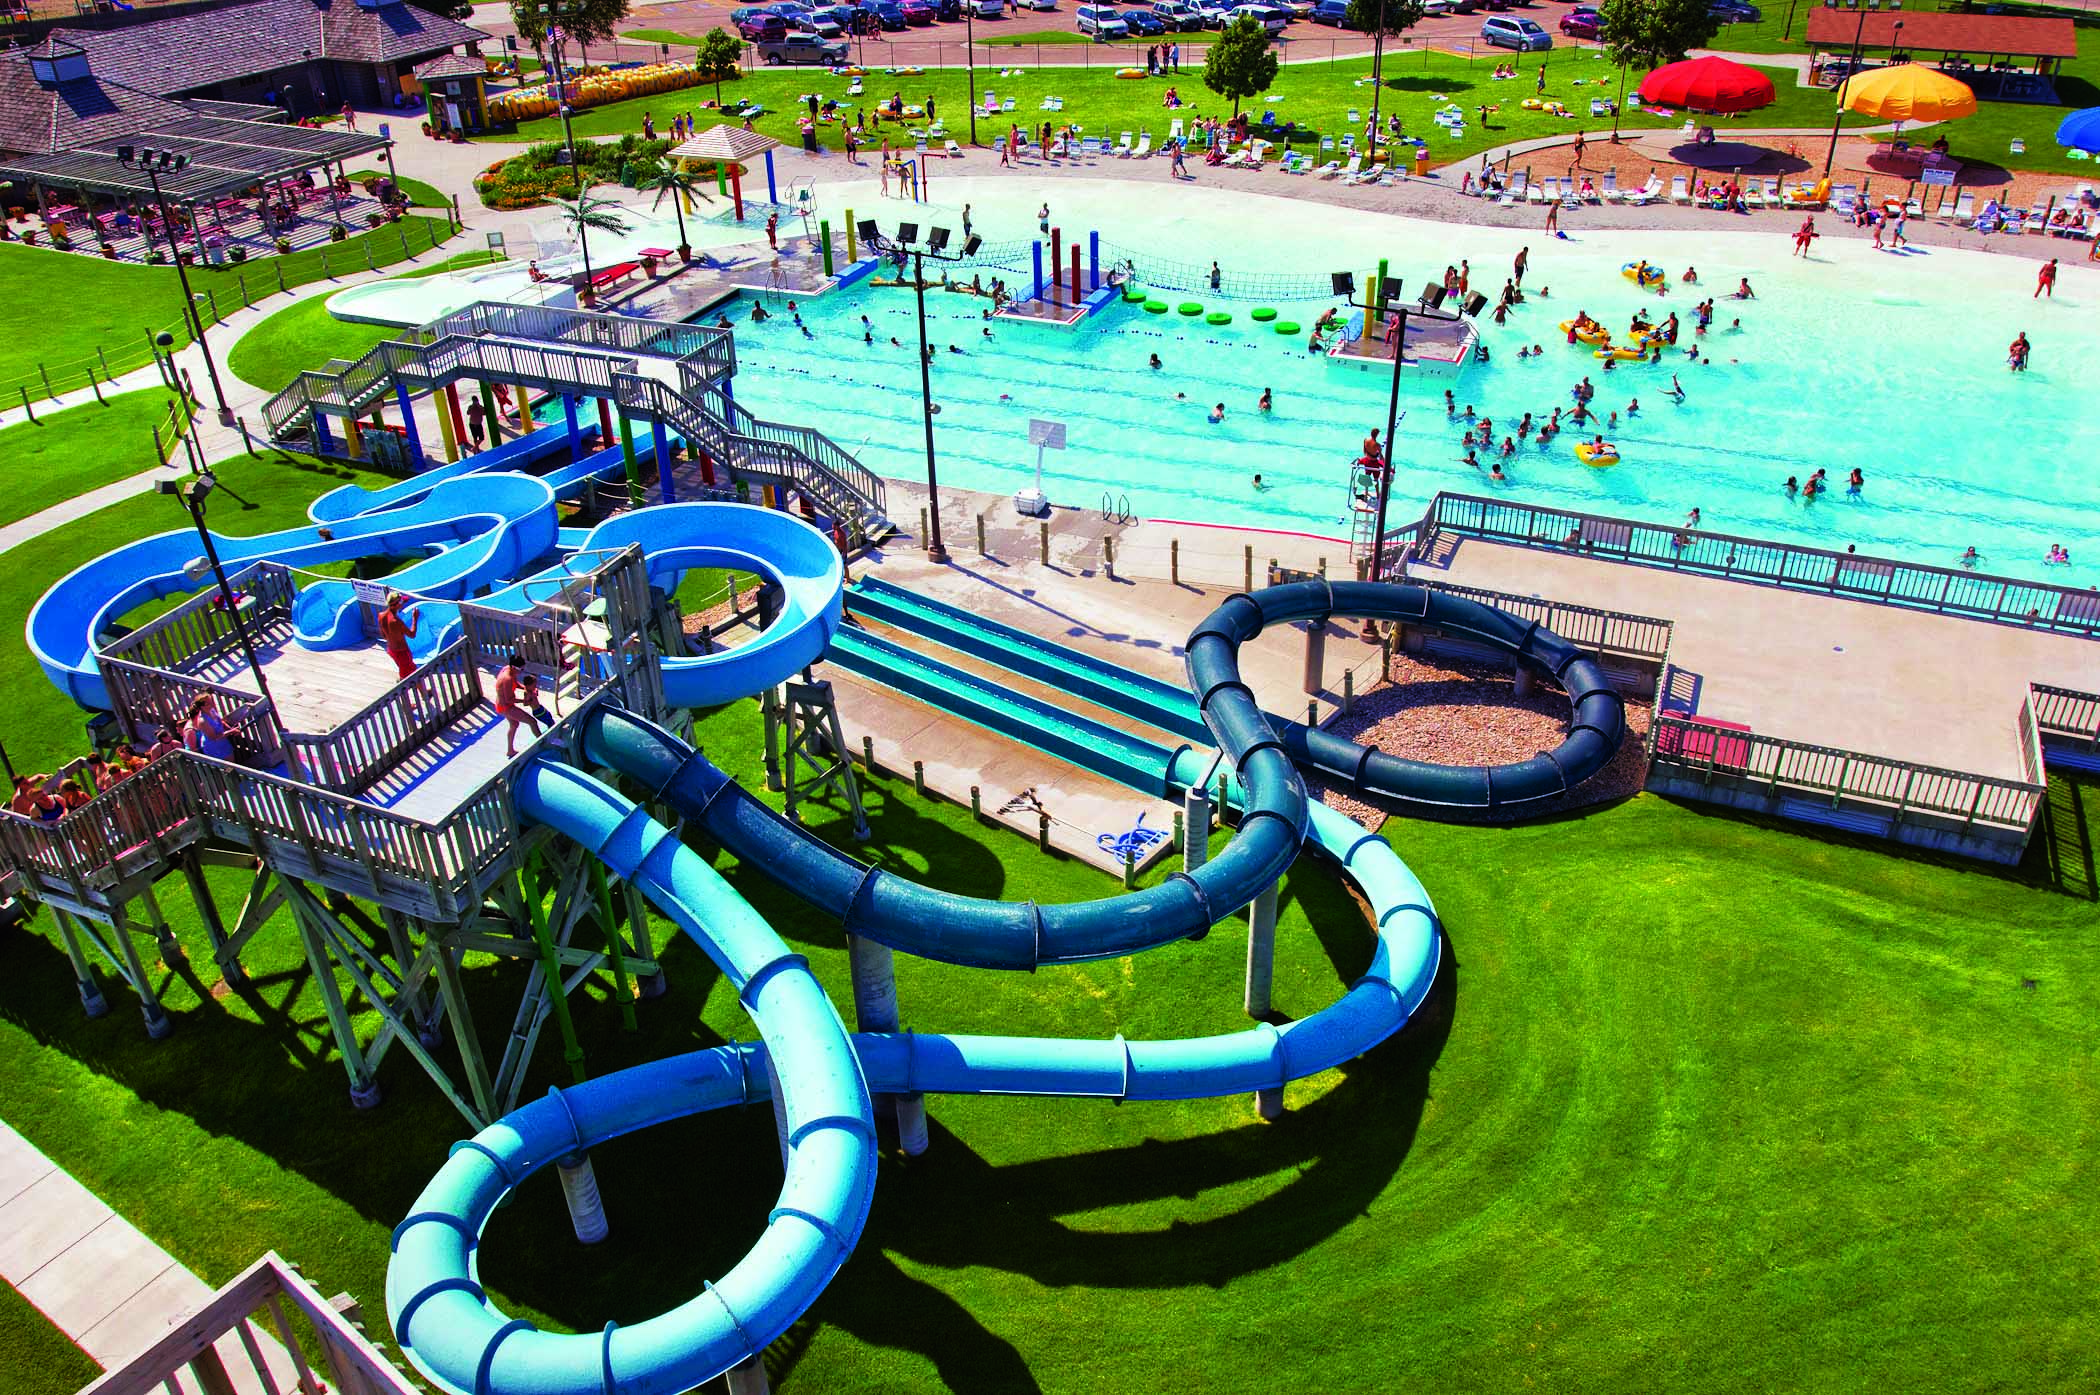 Island Oasis Waterpark in Grand Island, Nebraska